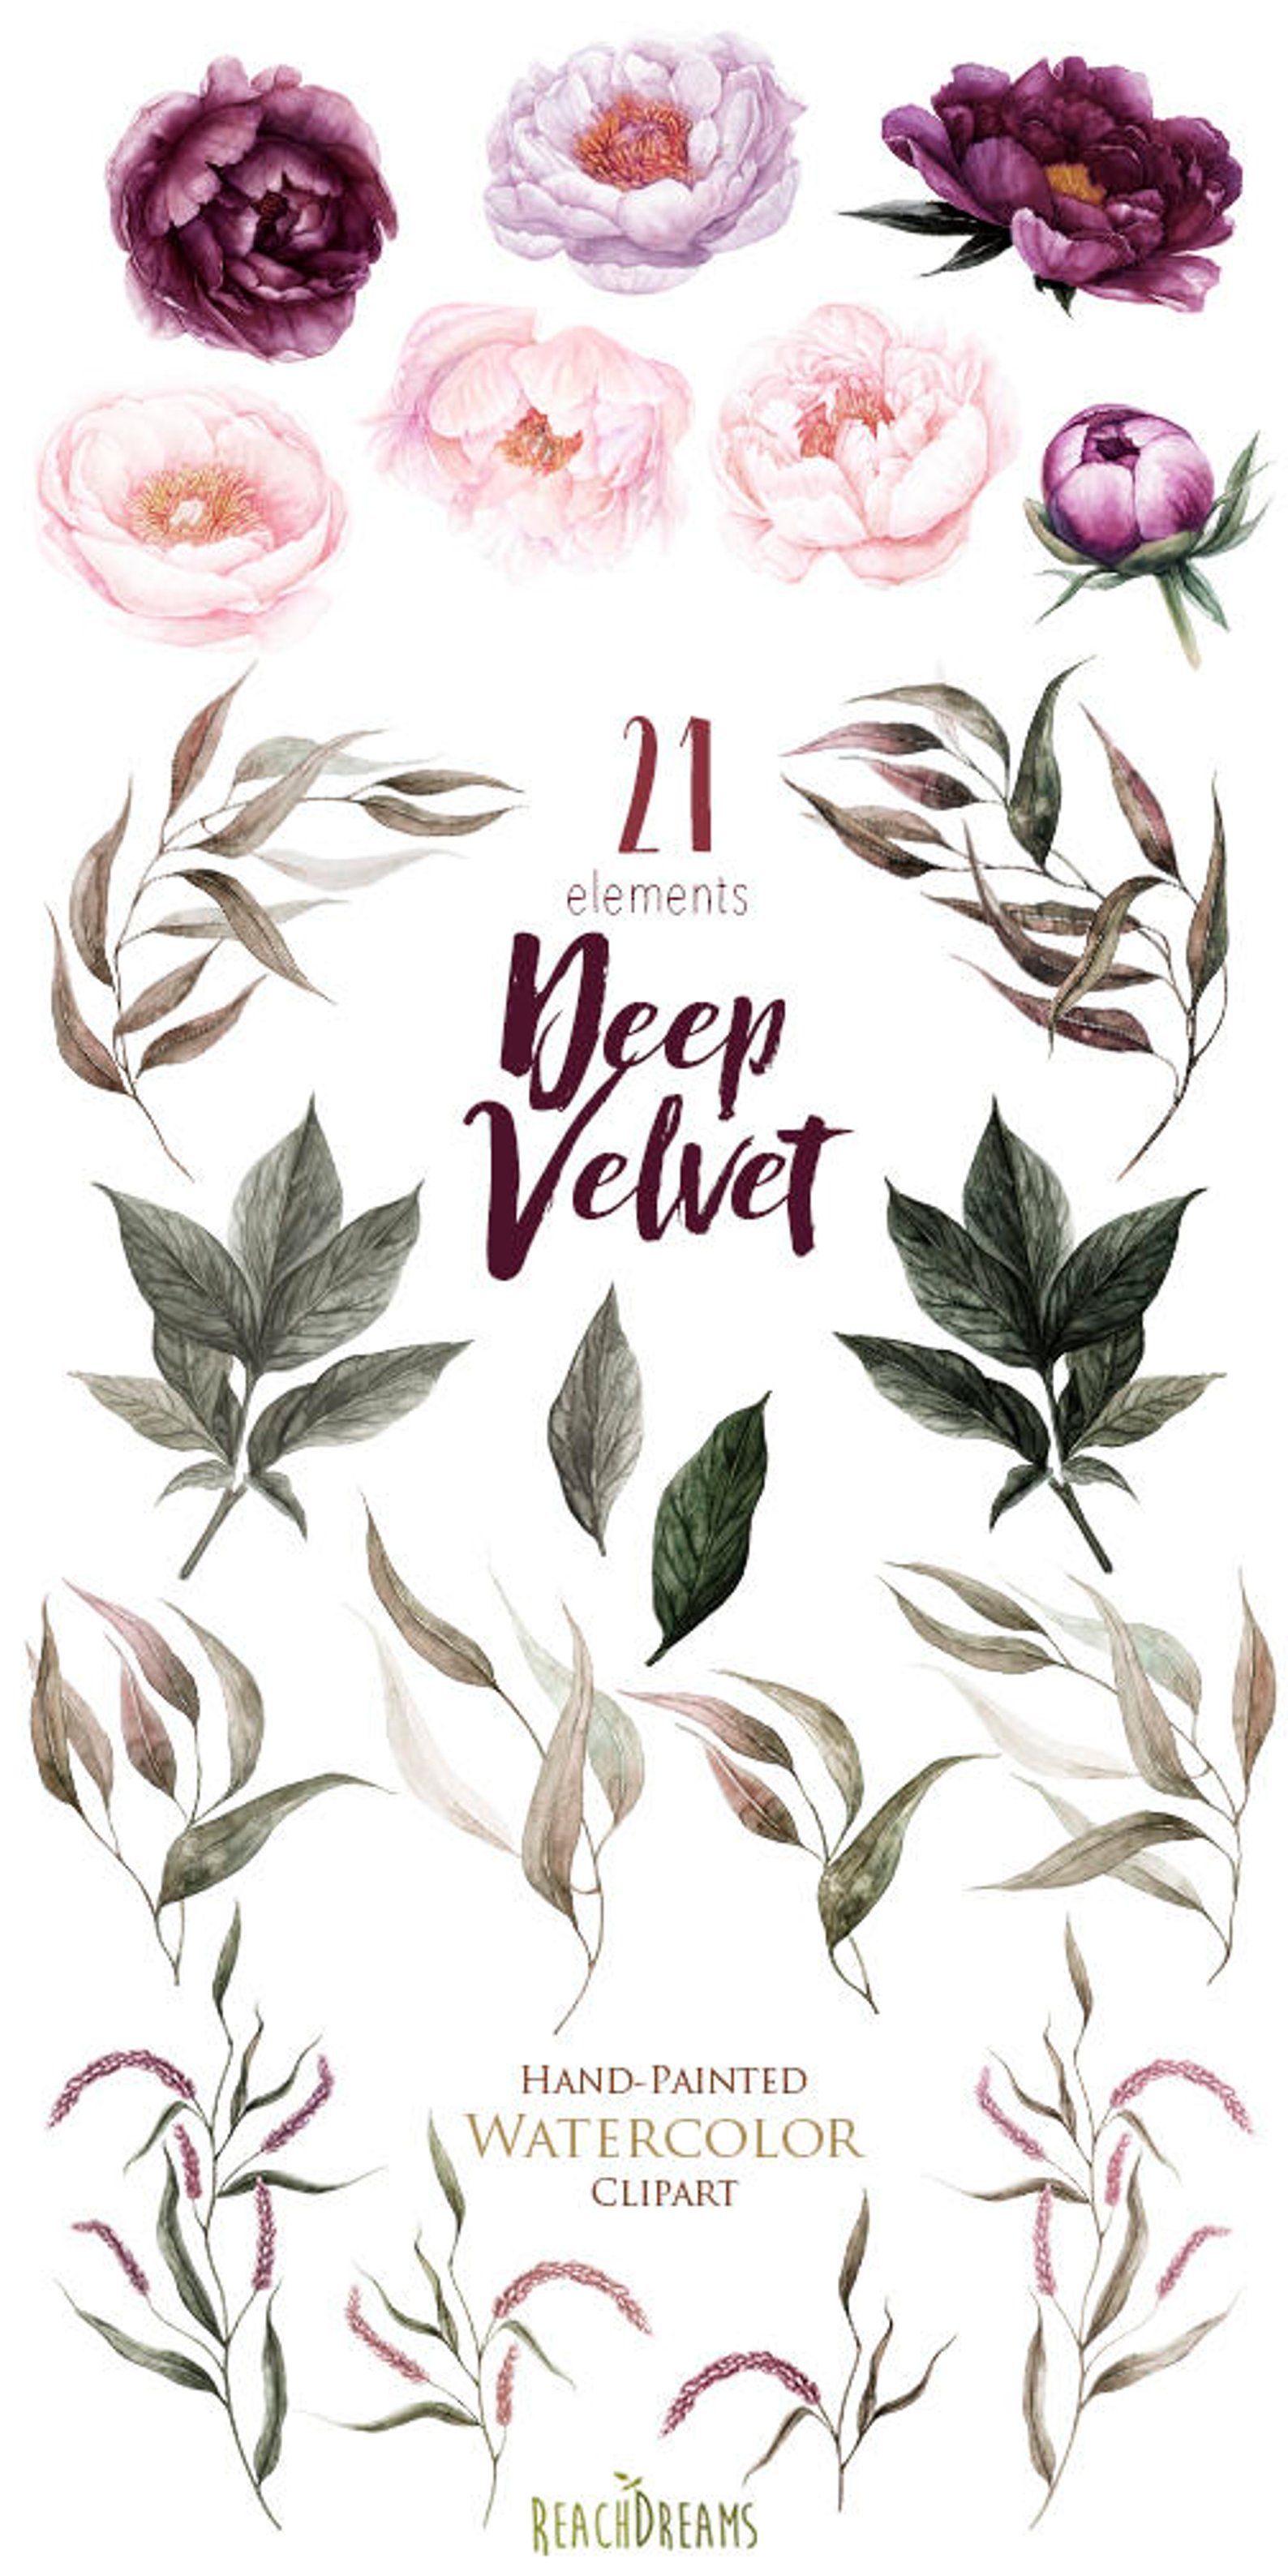 Peonies Flowers Watercolor, Floral elements, Plum, Burgundy, Violet, Botanical, Boho clipart, Hand Painted Wedding Clip art, Digital png | Blumen aquarell, Blumenzeichnung, Wasserfarbenblumen